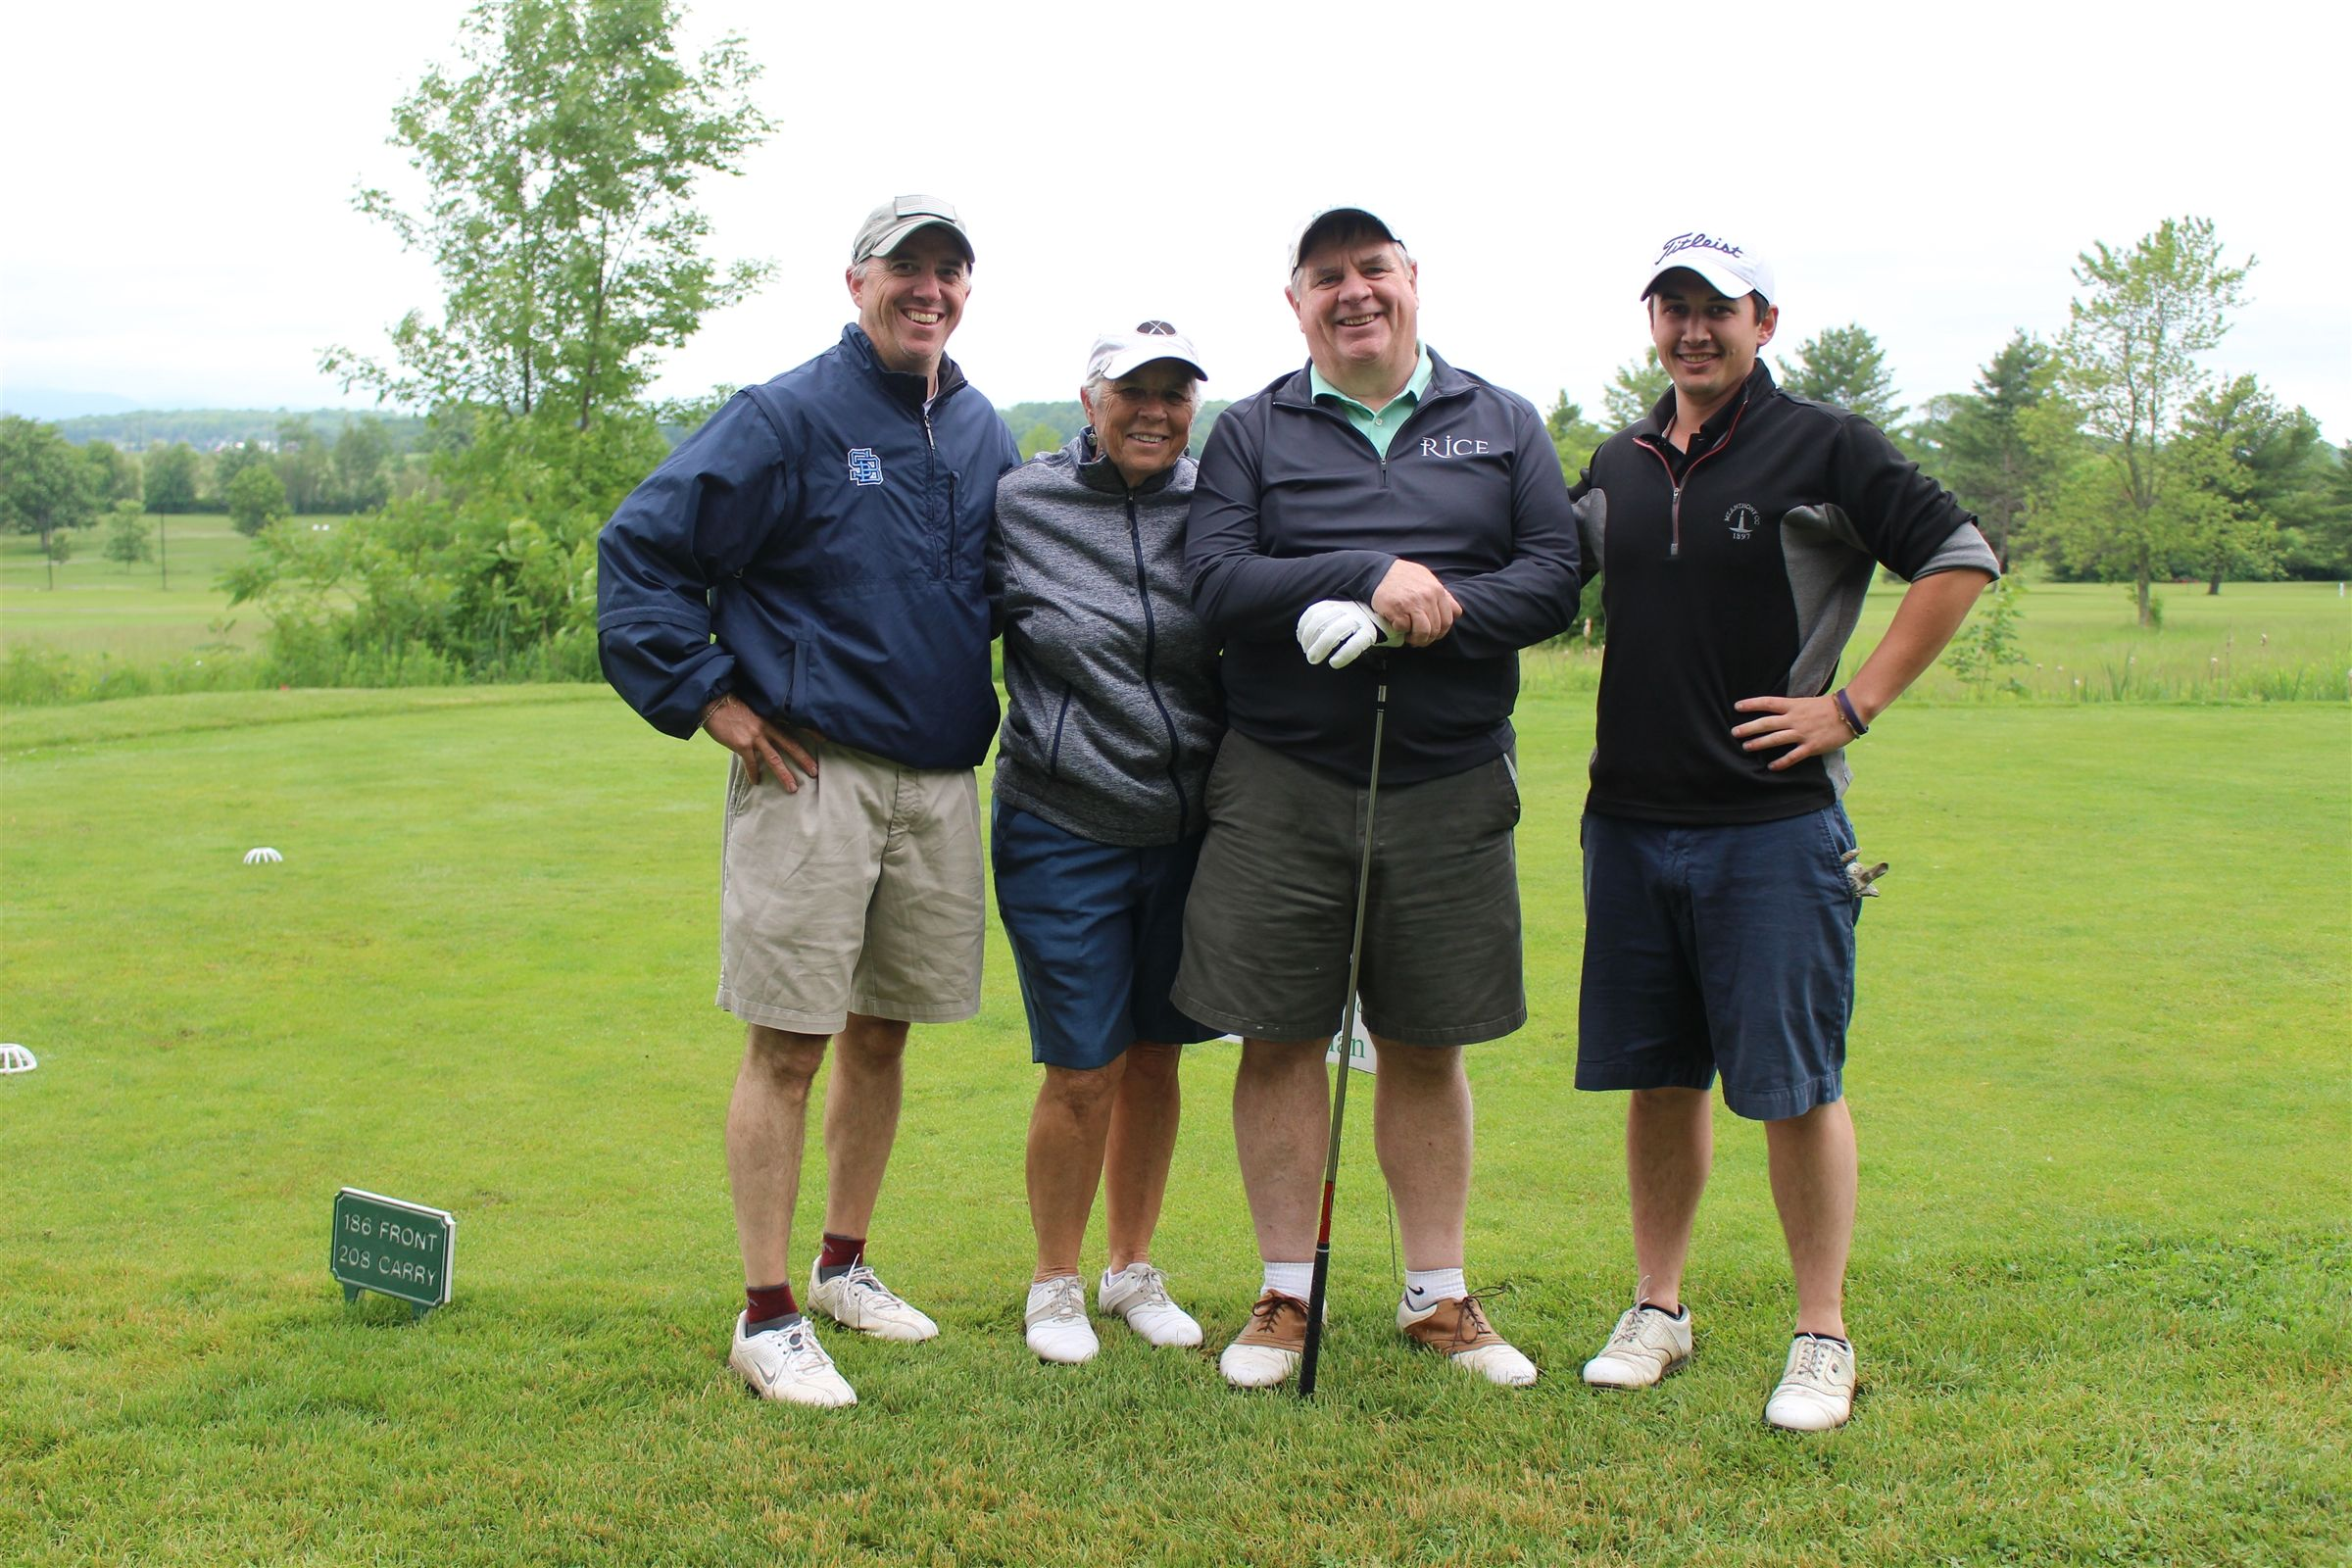 2019 second place winners - Marc Trombley '89, Laura Cummings, Dan McClintock '73 and Dan Hogan '11